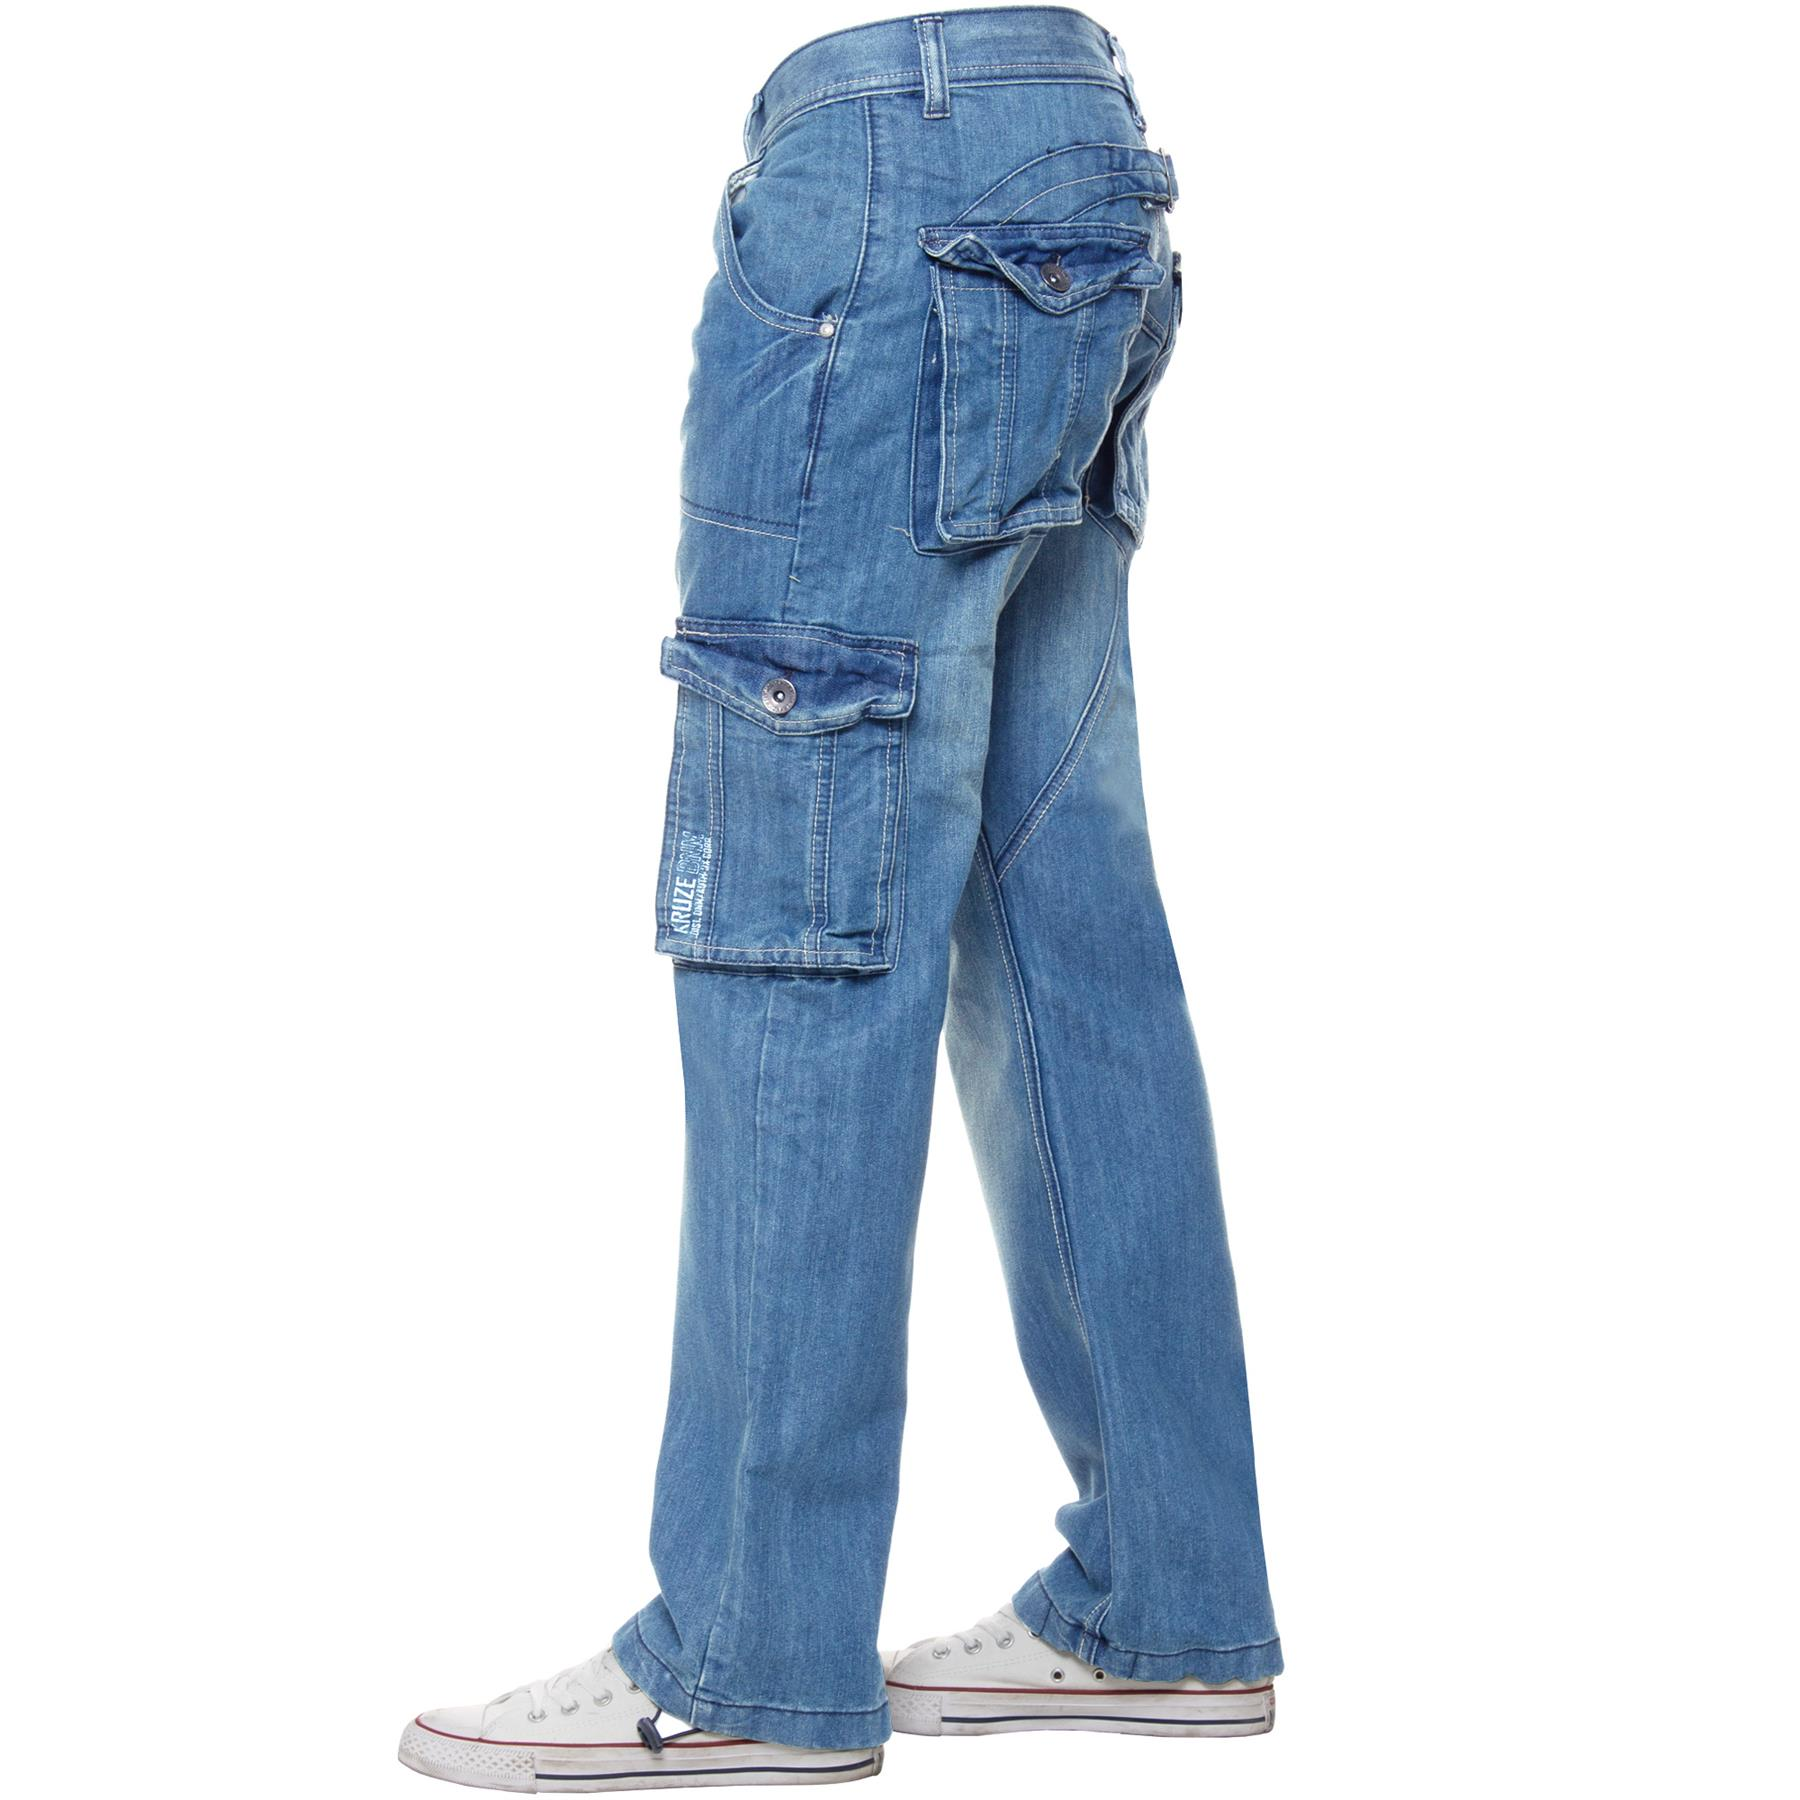 Kruze-Mens-Combat-Jeans-Casual-Cargo-Work-Denim-Trousers-Big-Tall-All-Waists thumbnail 14